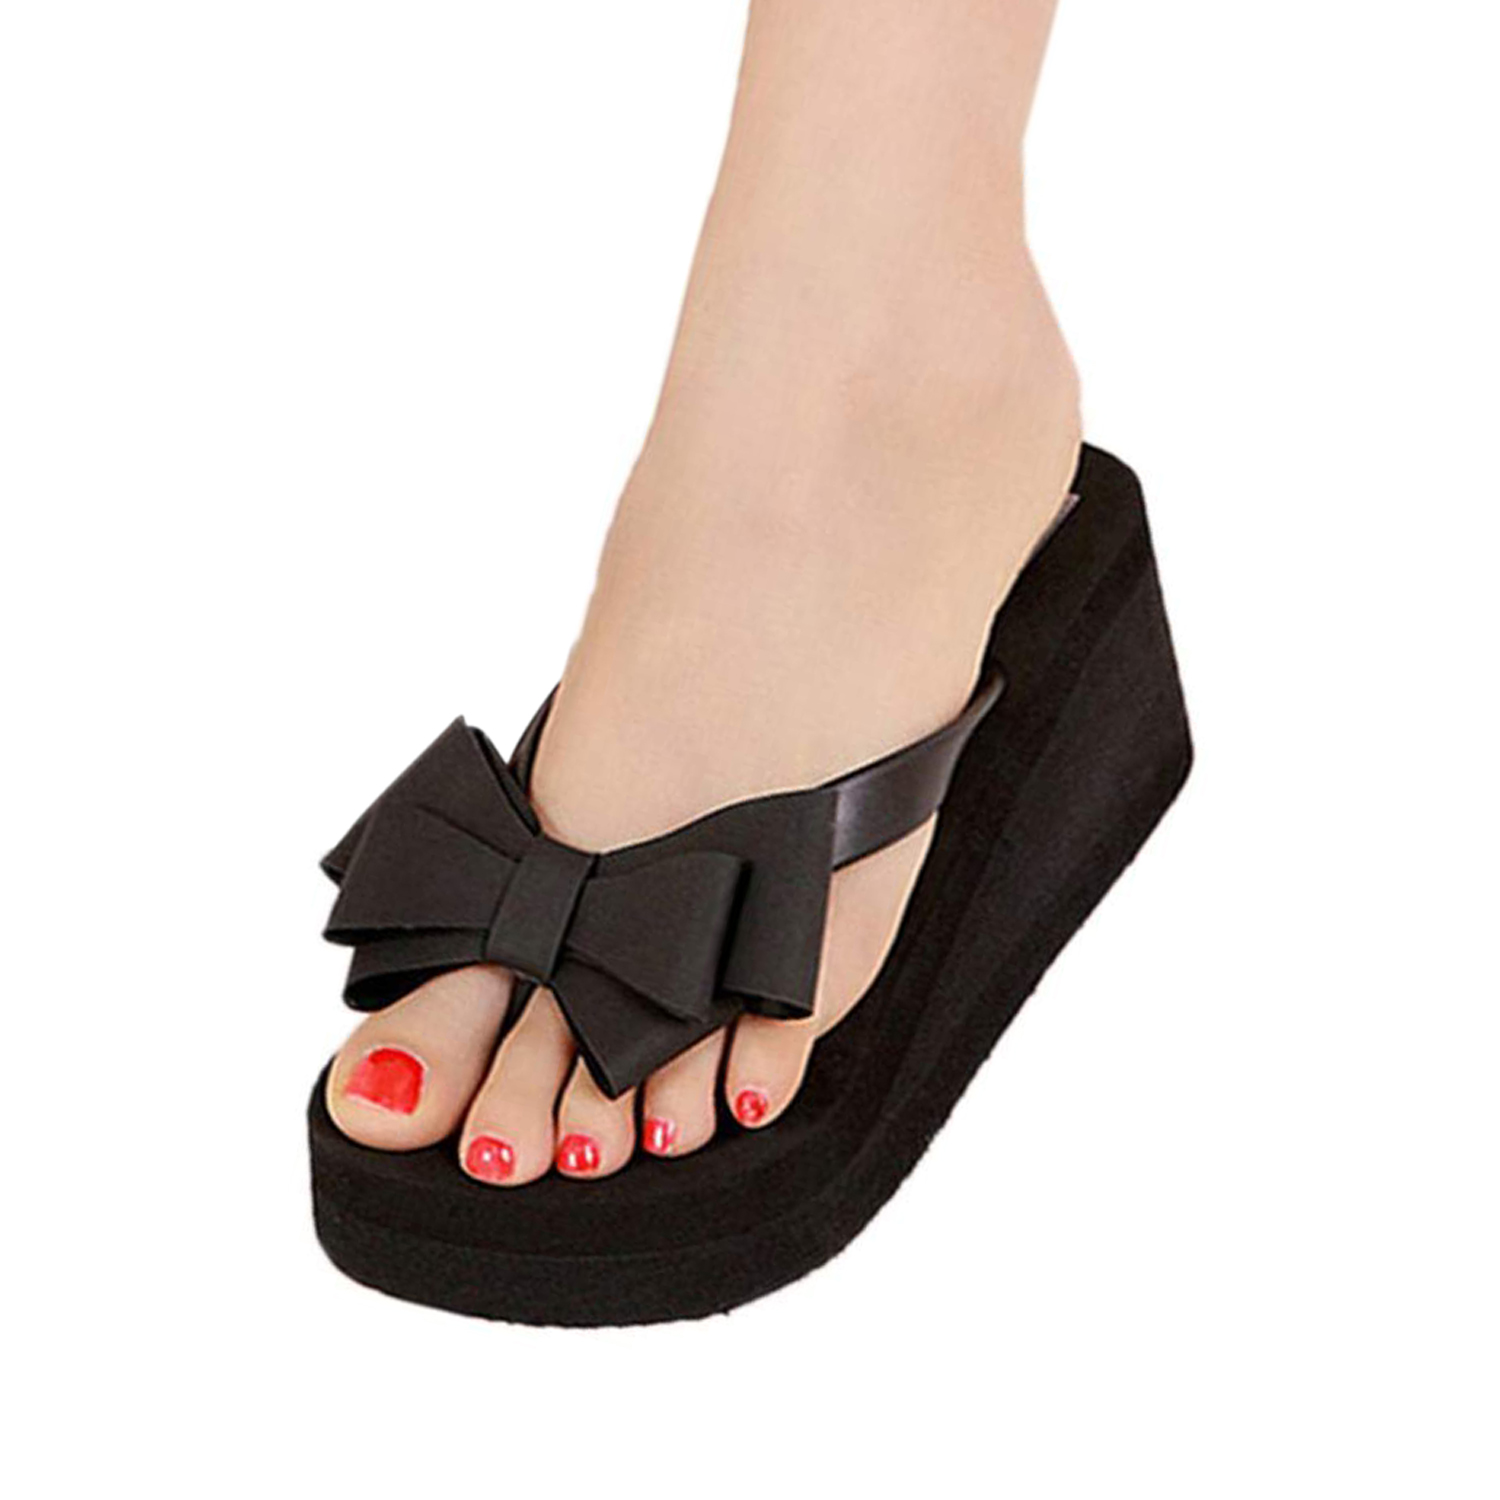 New 1pair summer women shoes sandalet Knotbow Sandals Shoes Beach Flat Wedges  flip flops womens platform flip flopsin Low Heels from Shoes on